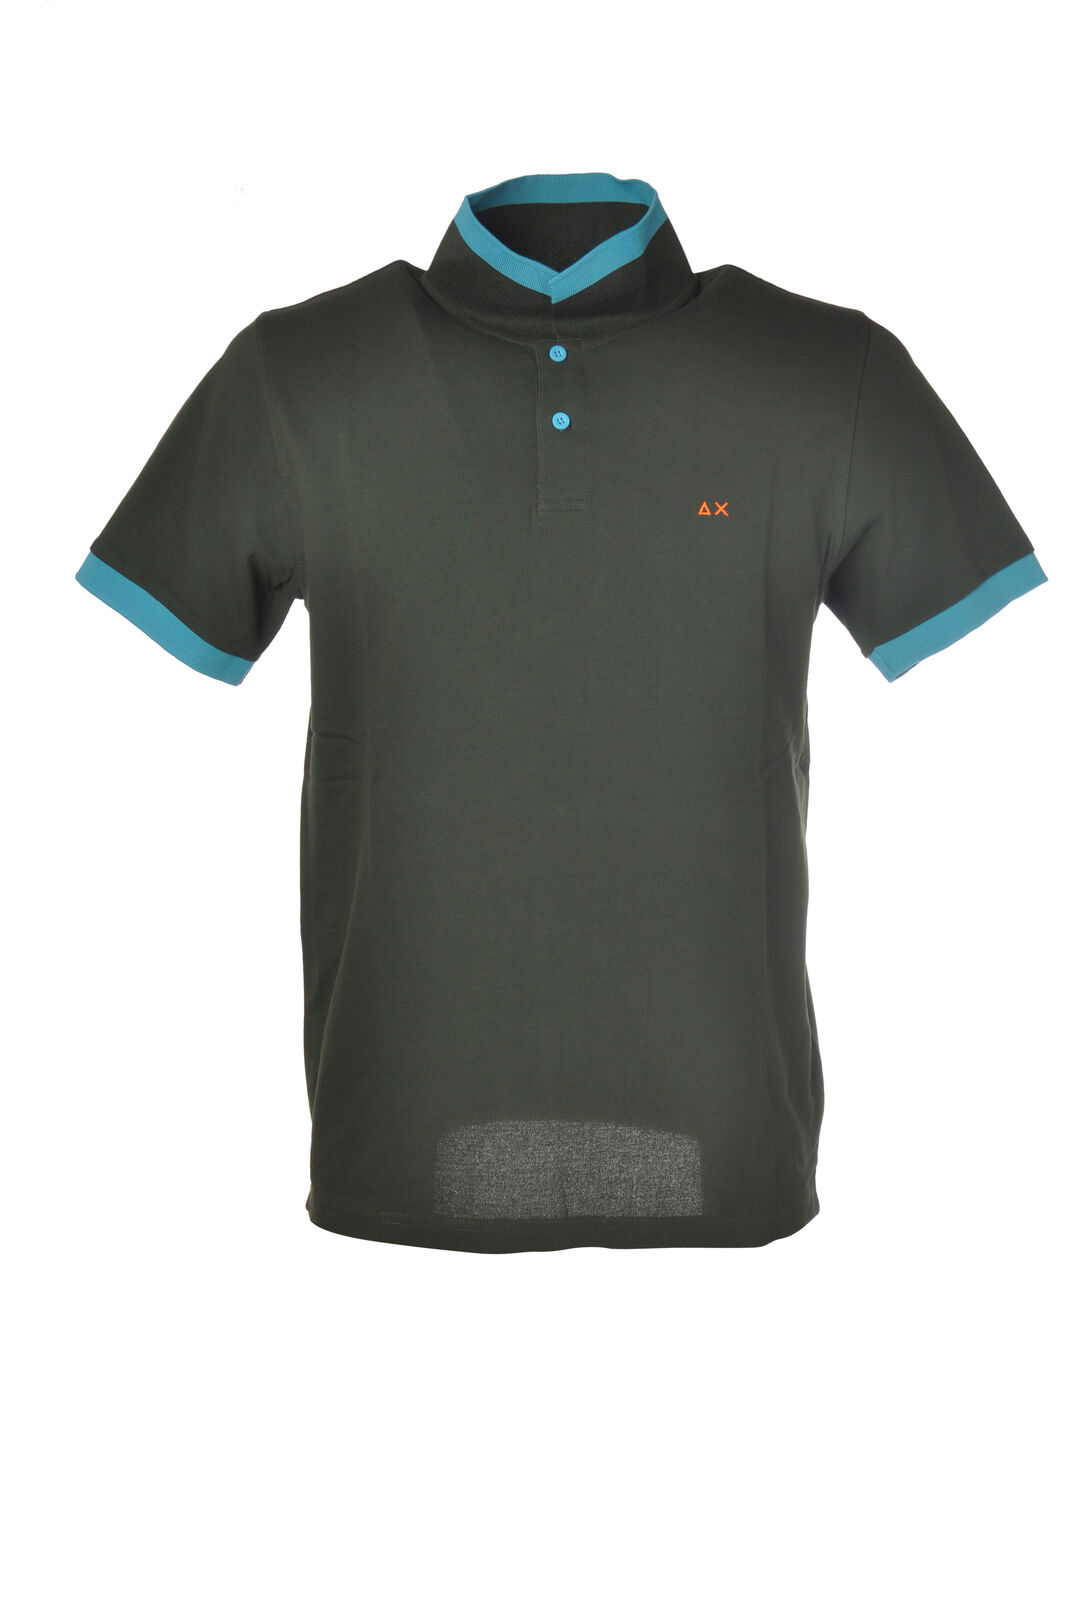 Sun 68 - Topwear-Polo - Man - Green - 6002213C192358